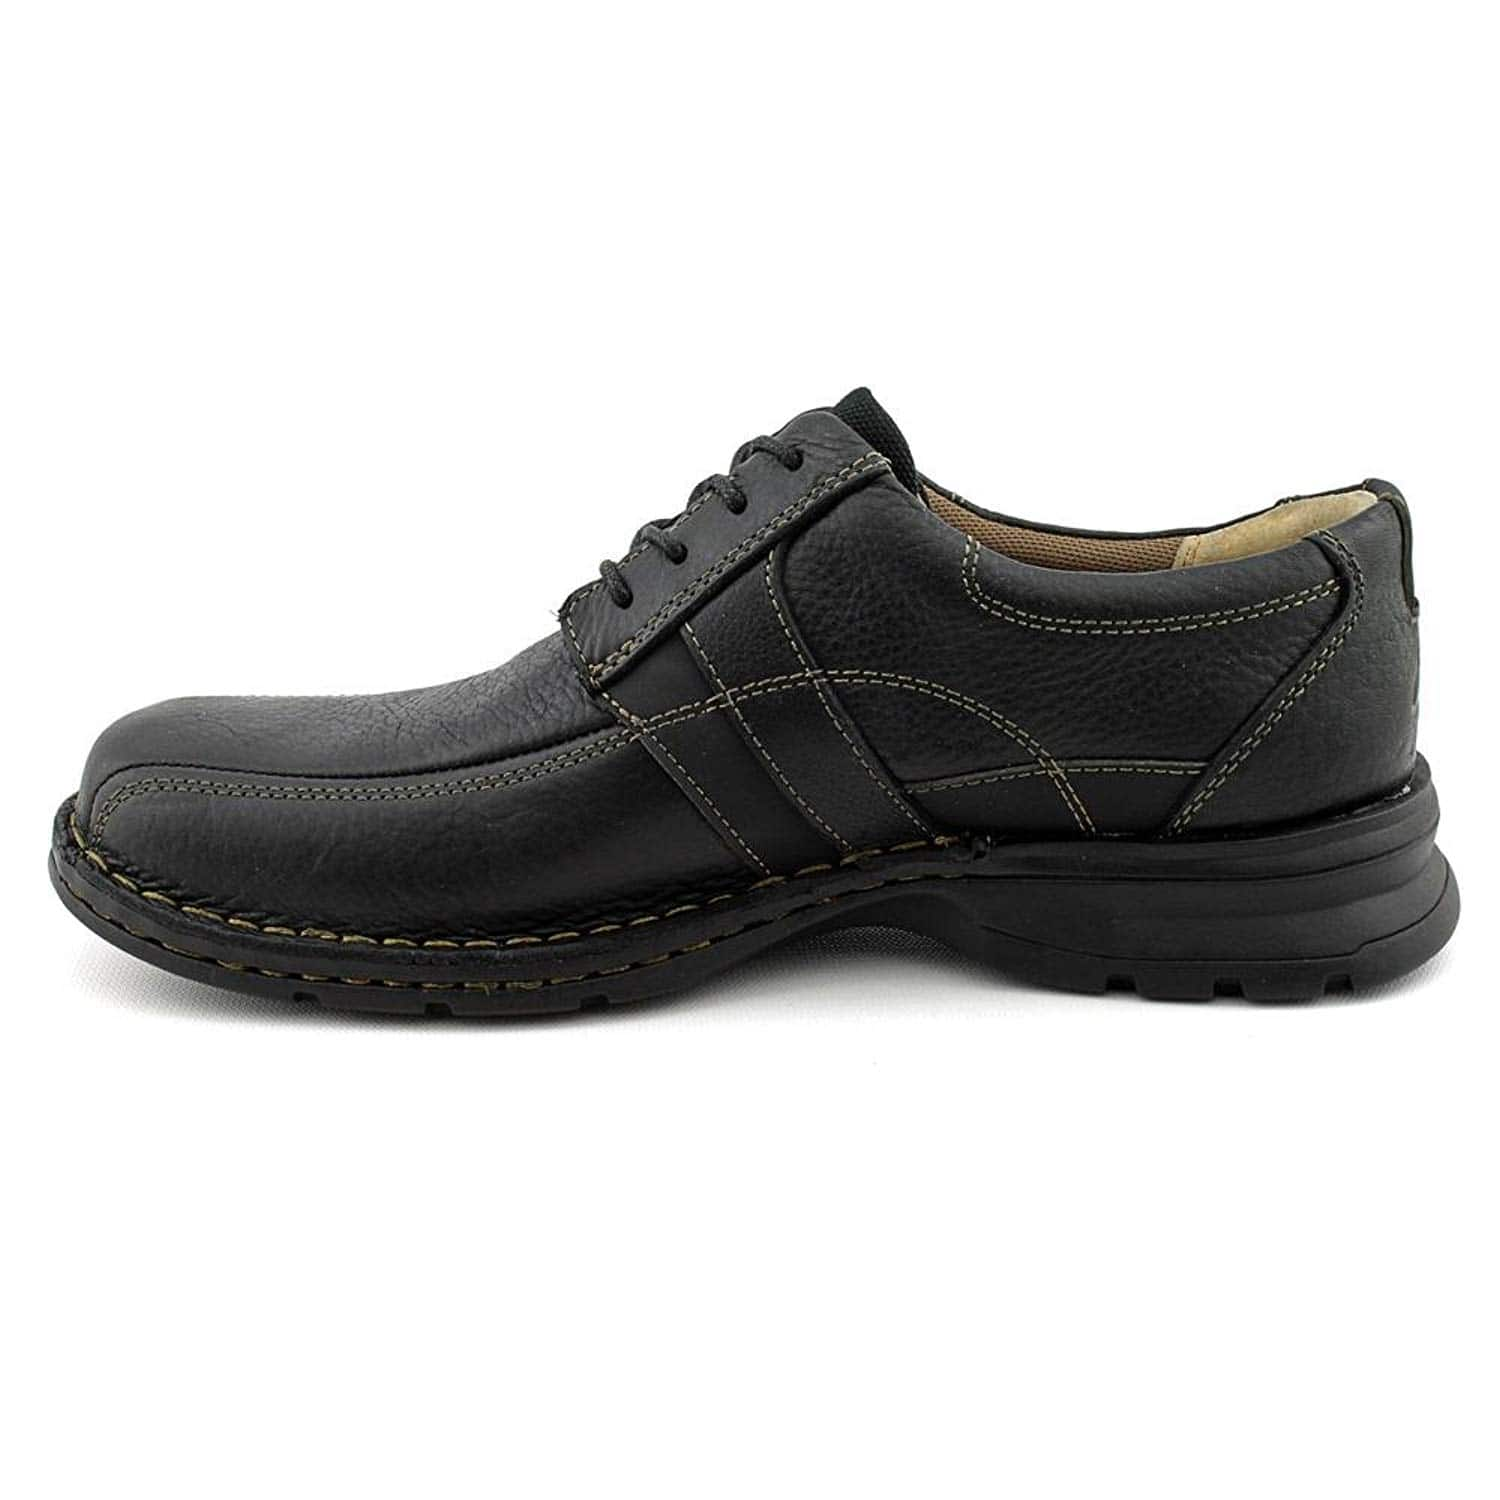 ba9b9888b262c Clarks Men's Espace Oxfords [Black Oily Leather, 11.5 D(M) US] @Amazon  $47.19